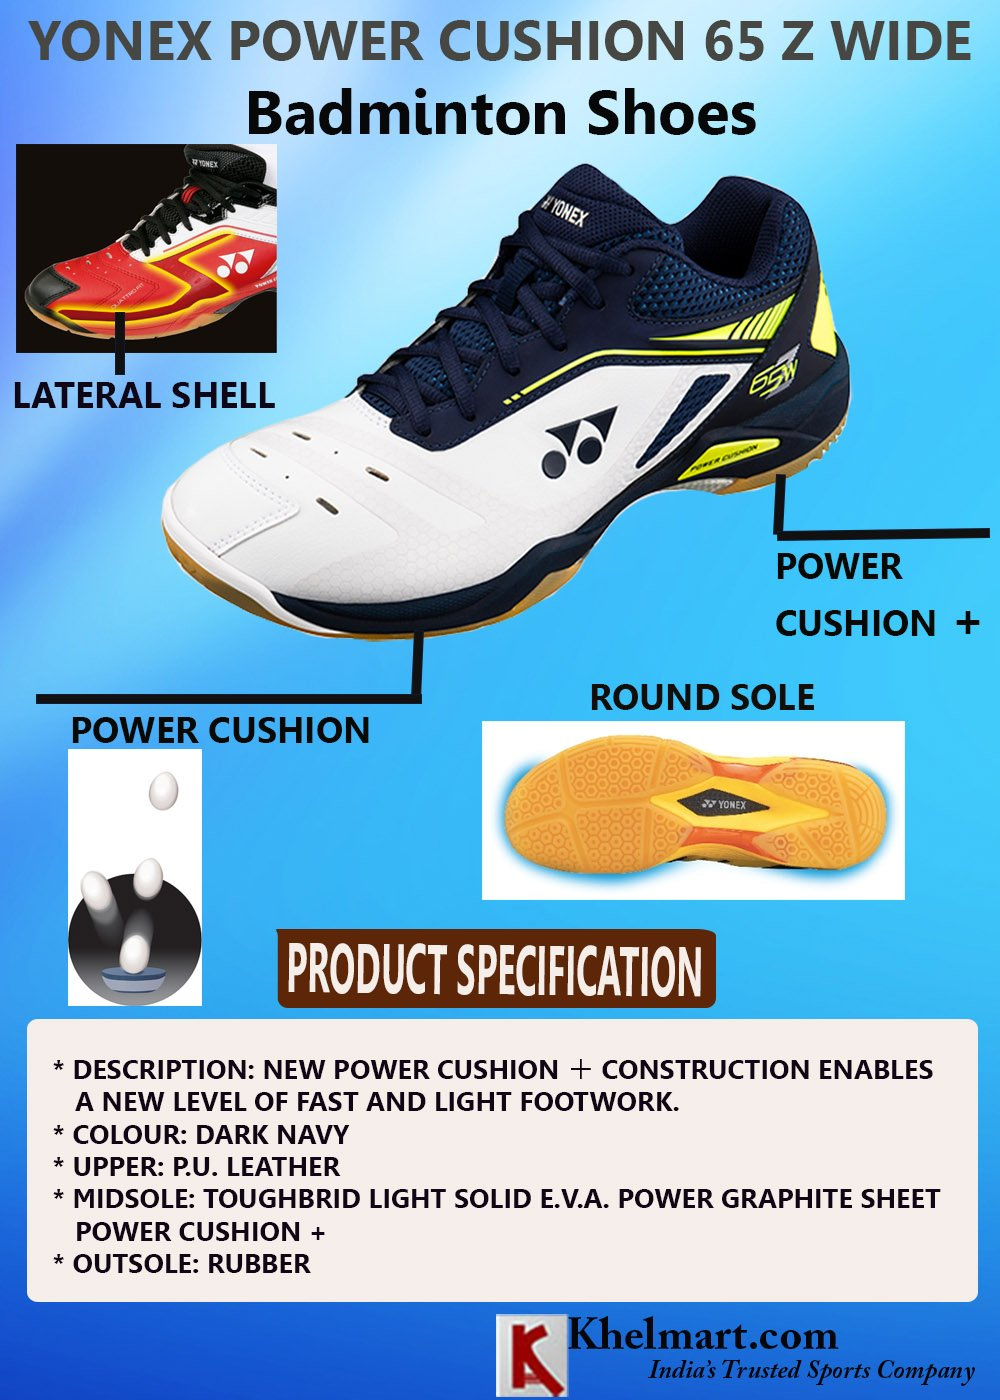 YONEX POWER CUSHION 65 Z WIDE_2.jpg